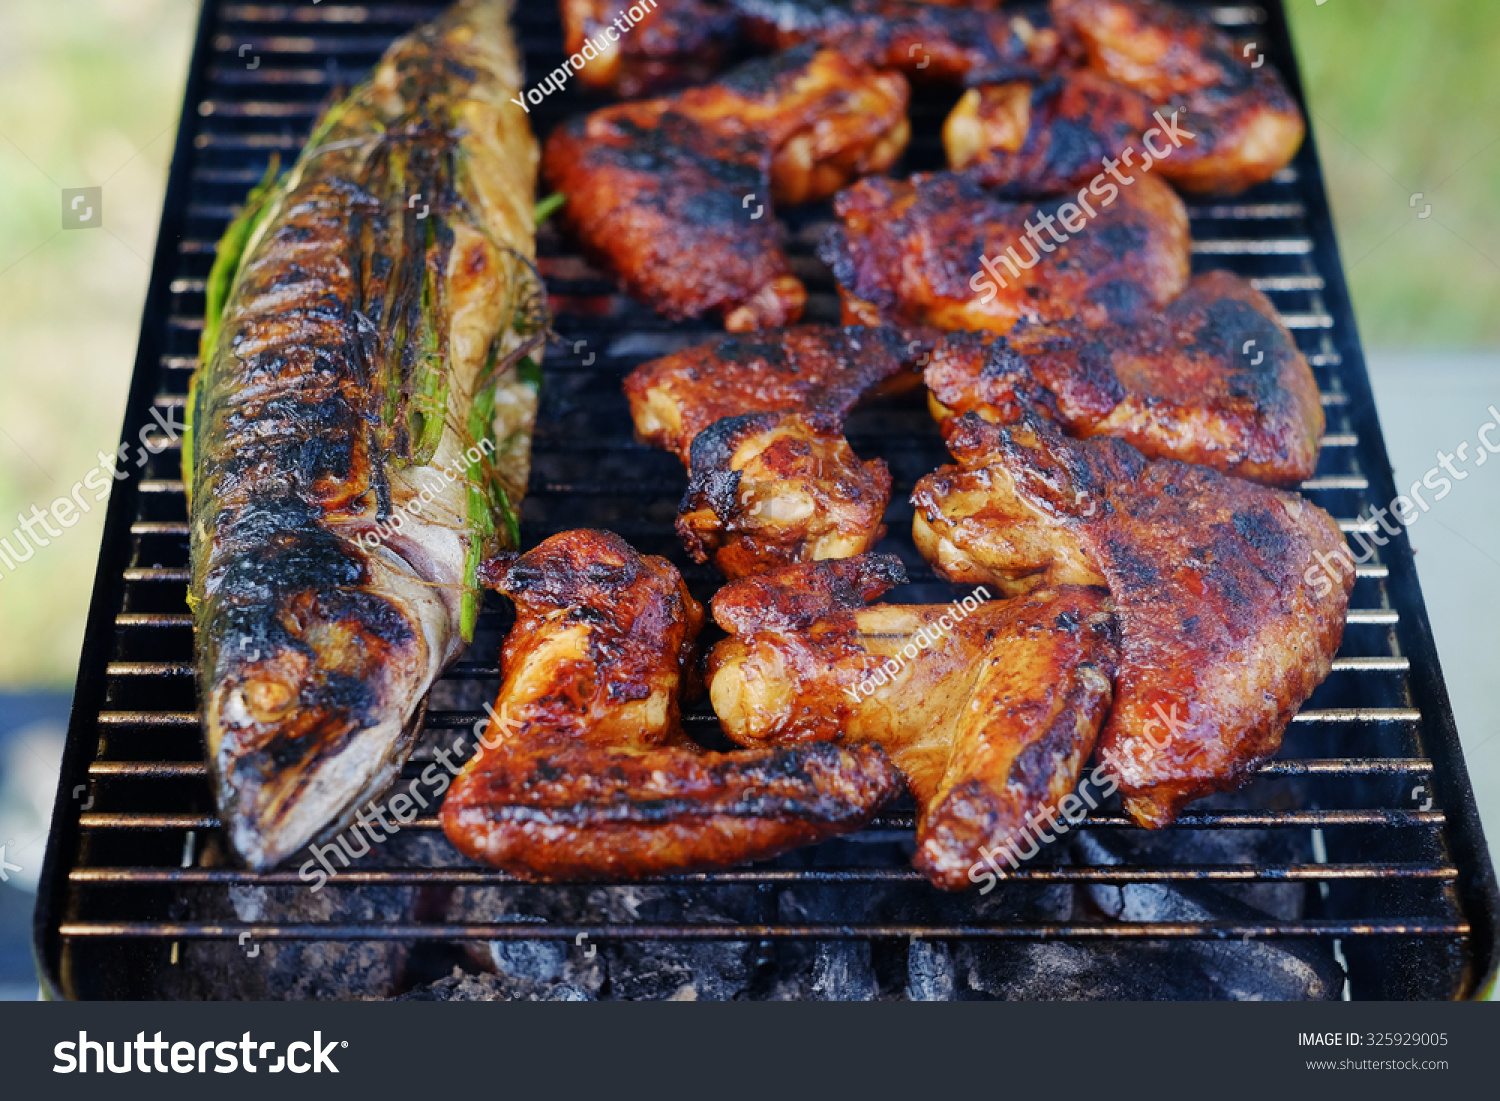 Grilled fish and chicken wings on campfire food preparing for Wings and fish